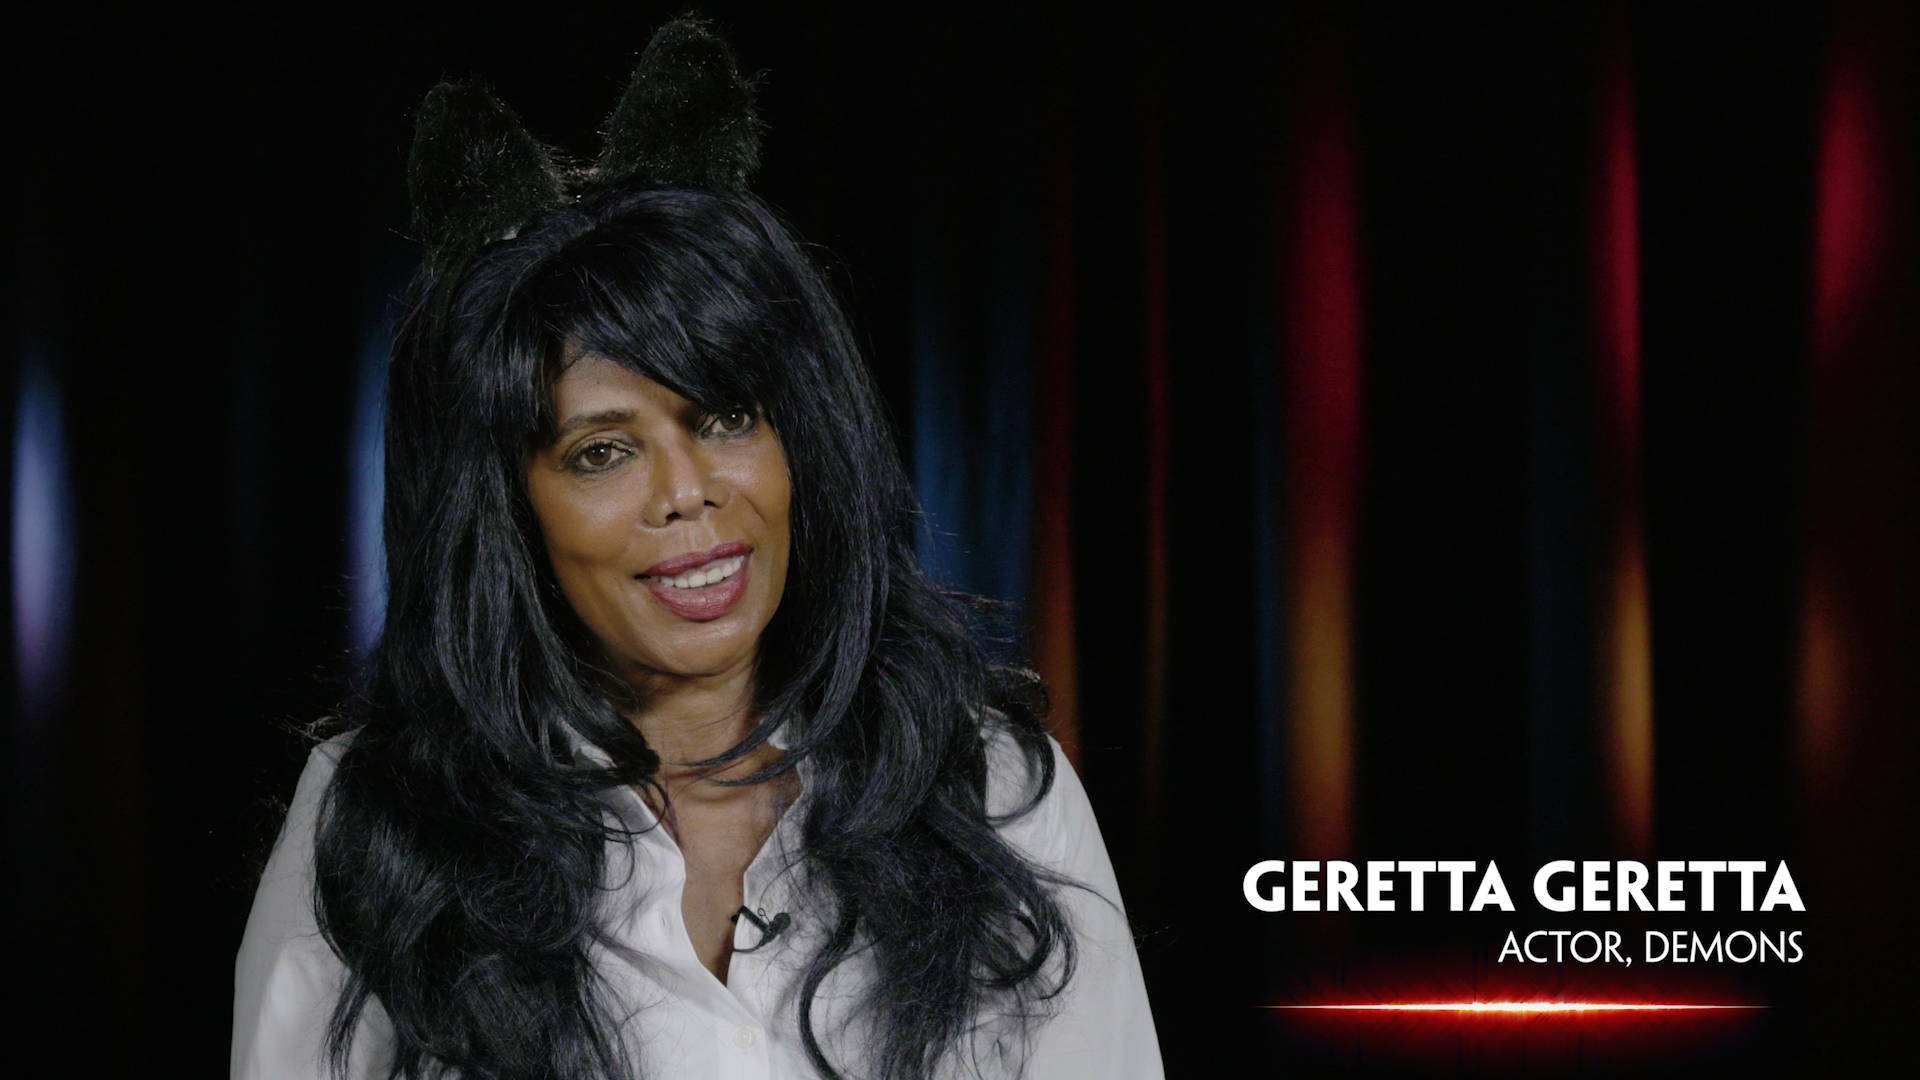 In Search of Darkness Part II: Geretta Geretta interview